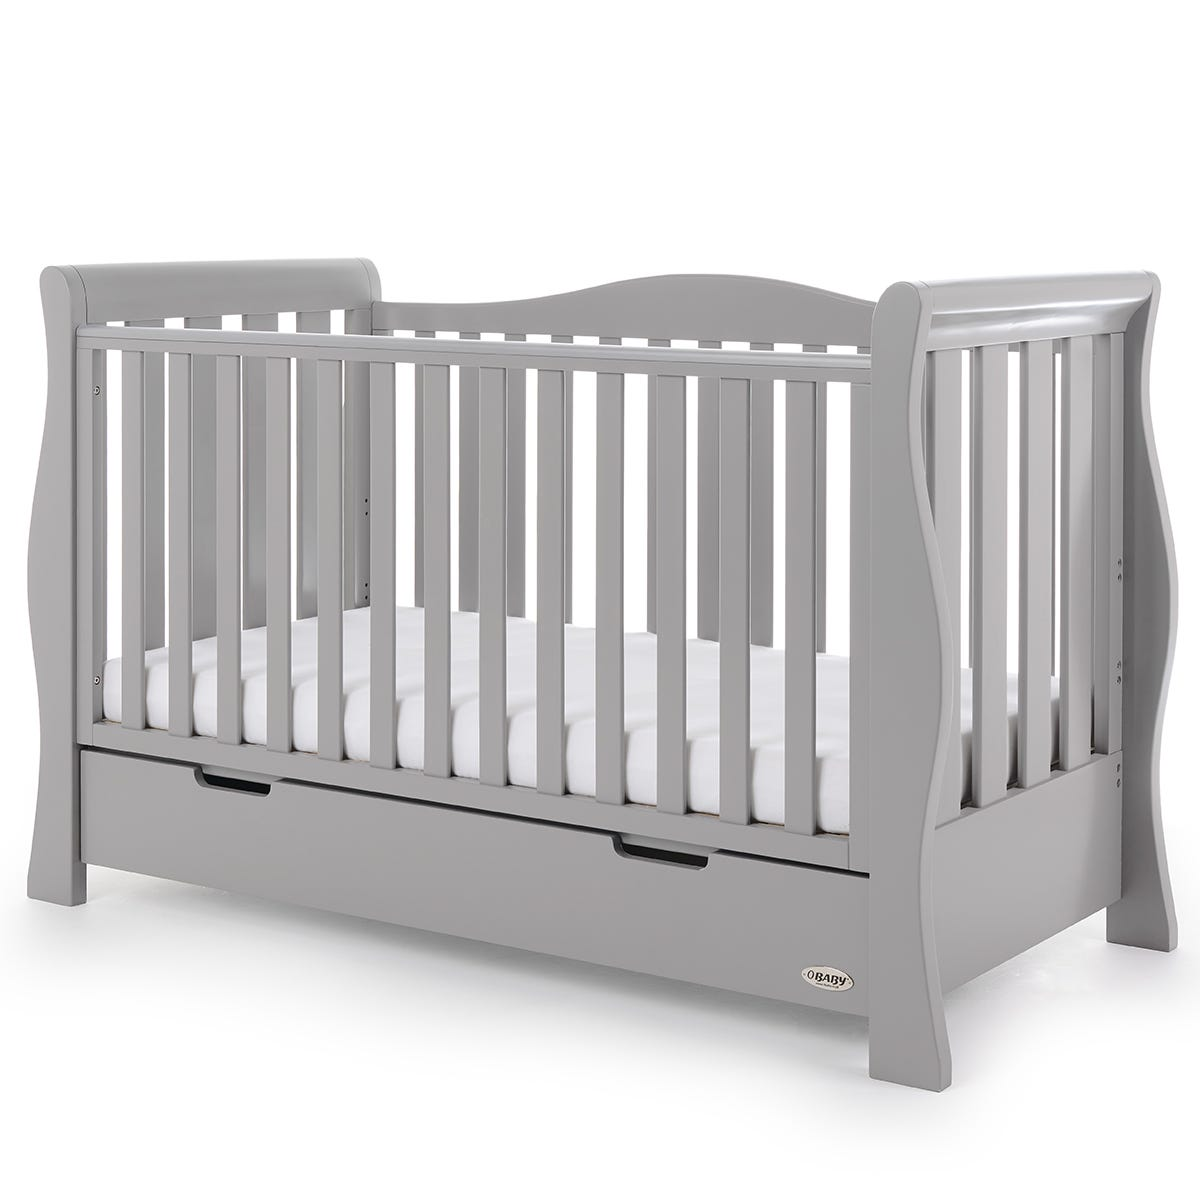 Obaby Stamford Luxe Sleigh Cot Bed Warm Grey